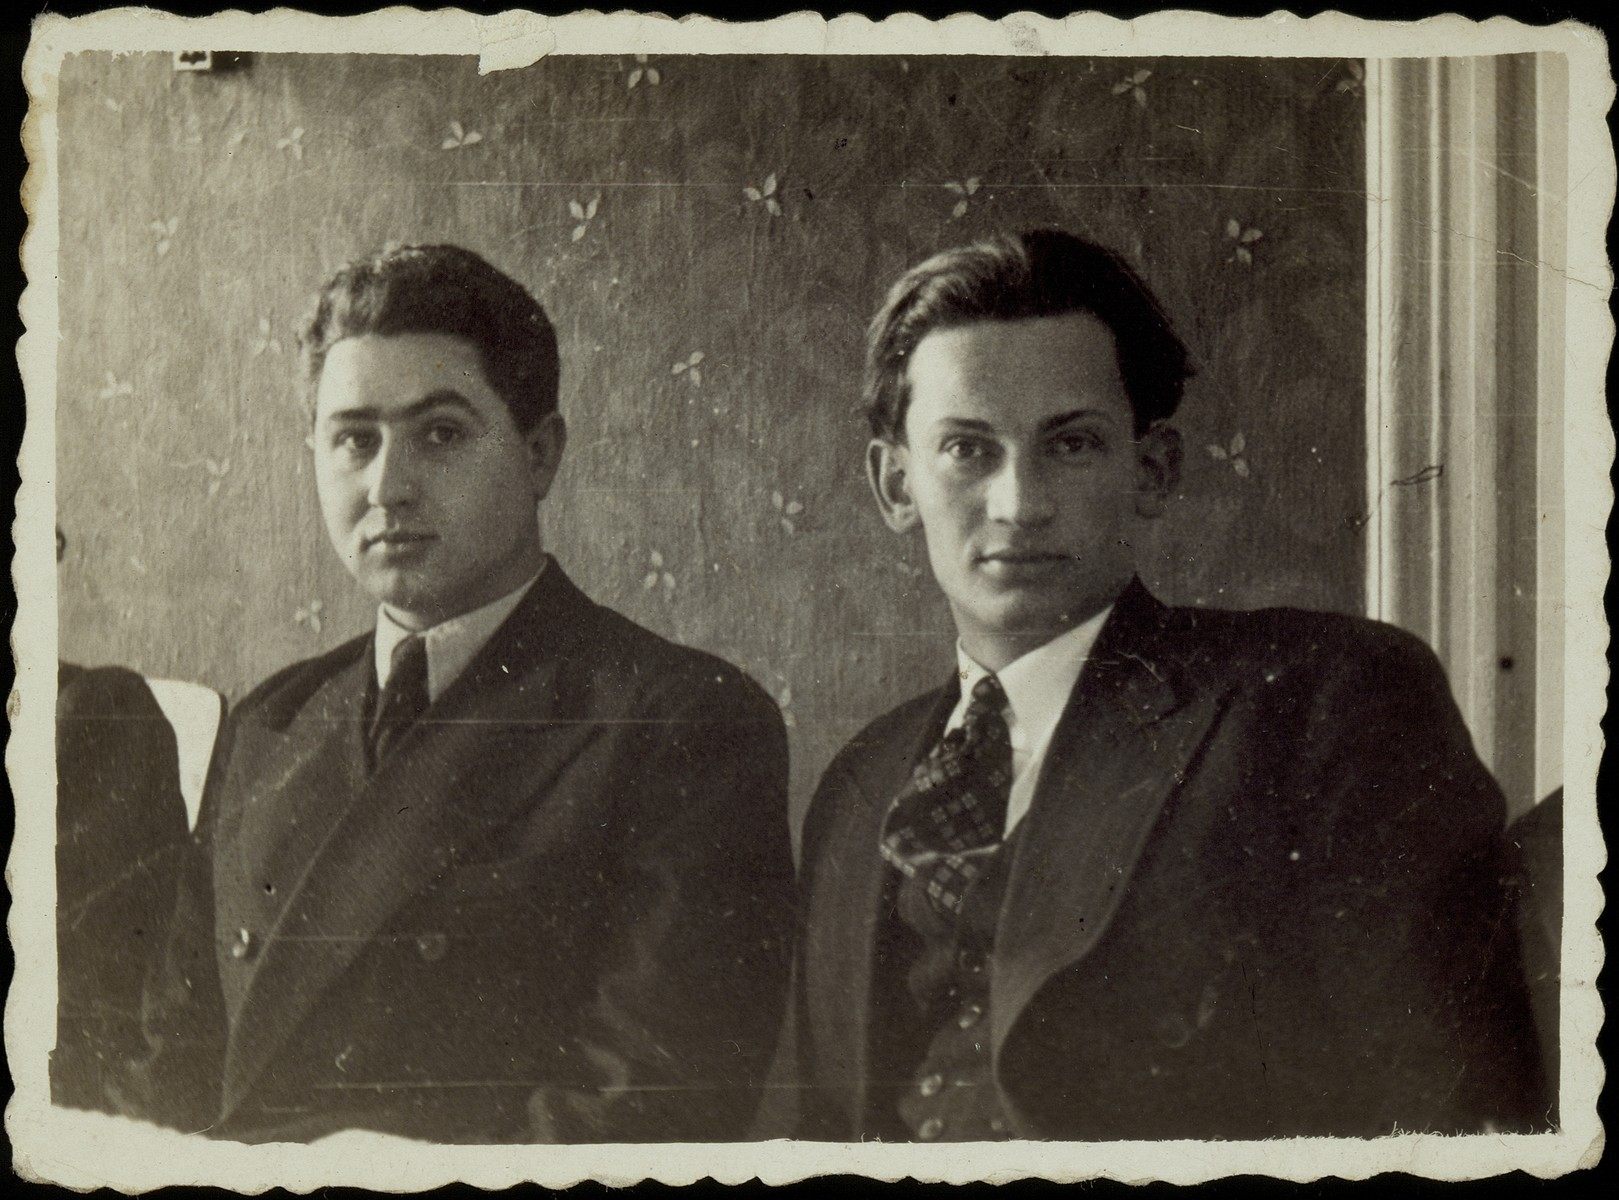 Portrait of Hayyim Shuster (left) with his friend Etchke Jurdyczanski.    Hayyyim, the shtetl's leading Communist and anti-Zionist, ordered the closing of the Hebrew School, banned all Zionist organizations and the speaking of Hebrew during the Soviet occupation of Eisiskes (June 15, 1940 - June 23, 1941).  Hayyim was killed by fellow Soviet Partisans.  Etchke survived the war in the Soviet Union.